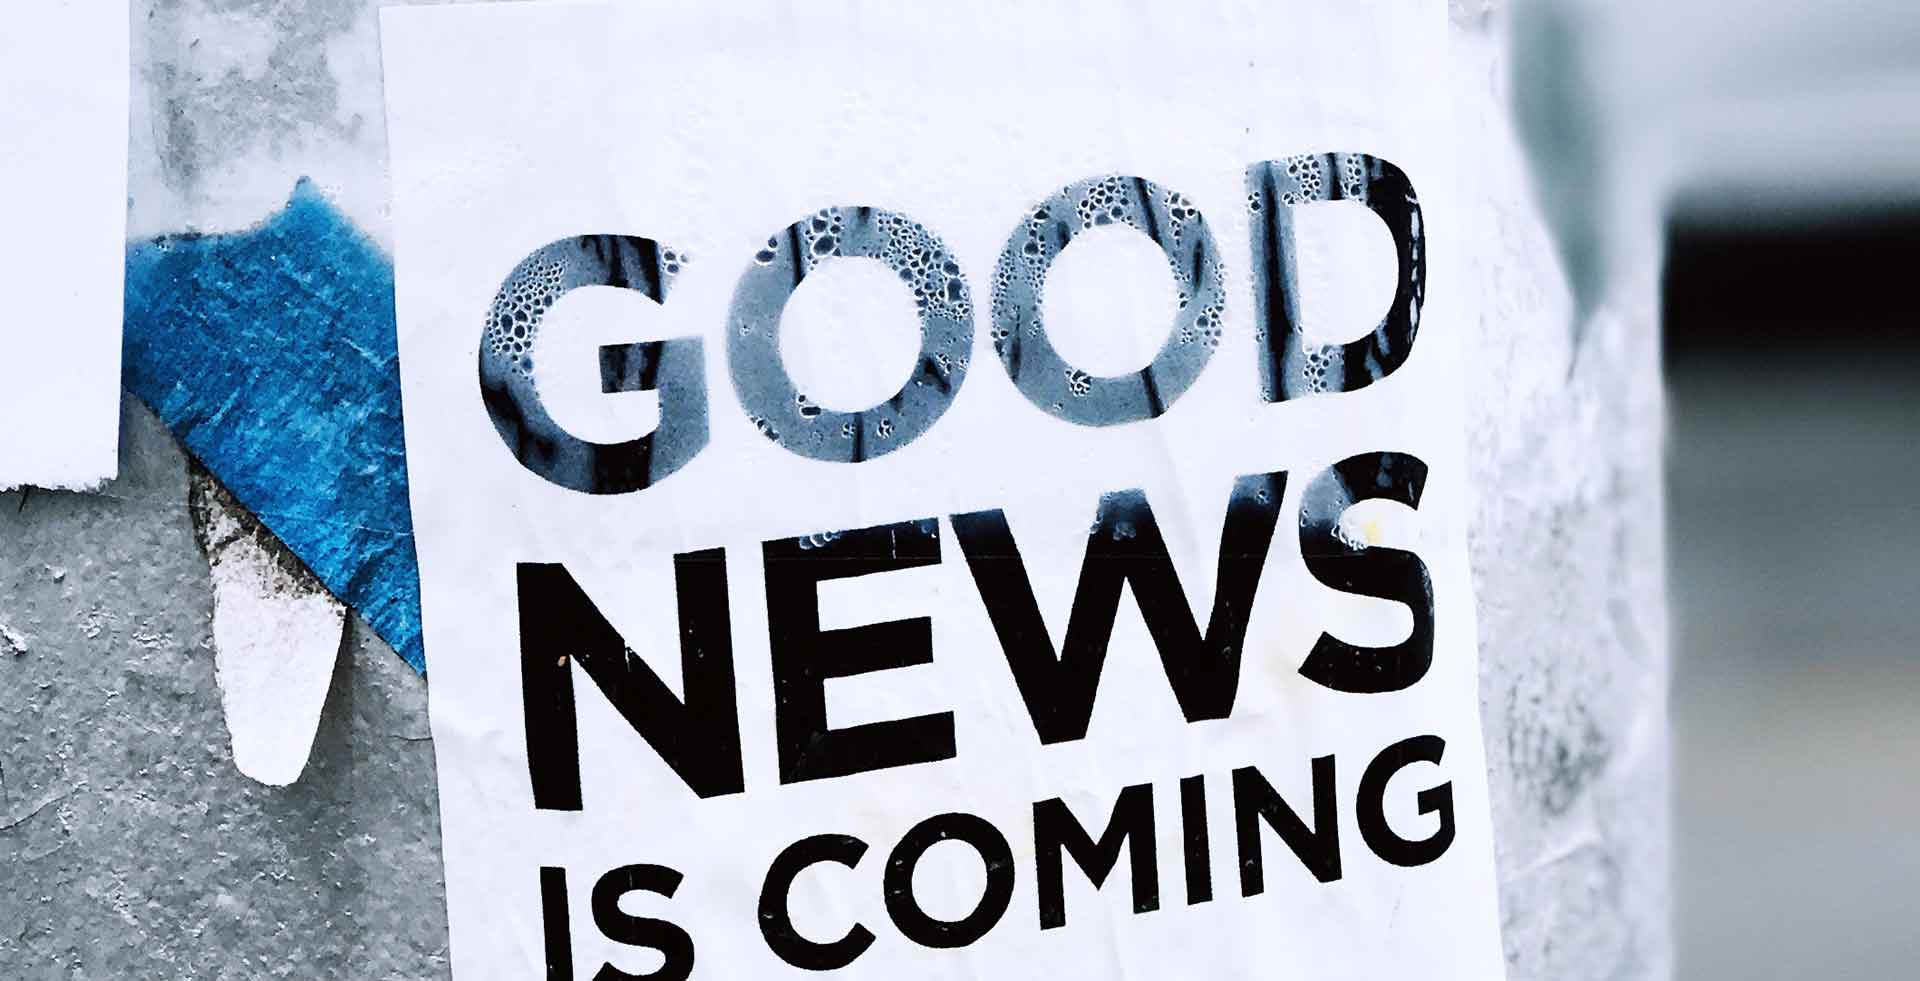 How Great Is The Good News? | Elizabeth Turnage intended for Good News Planners